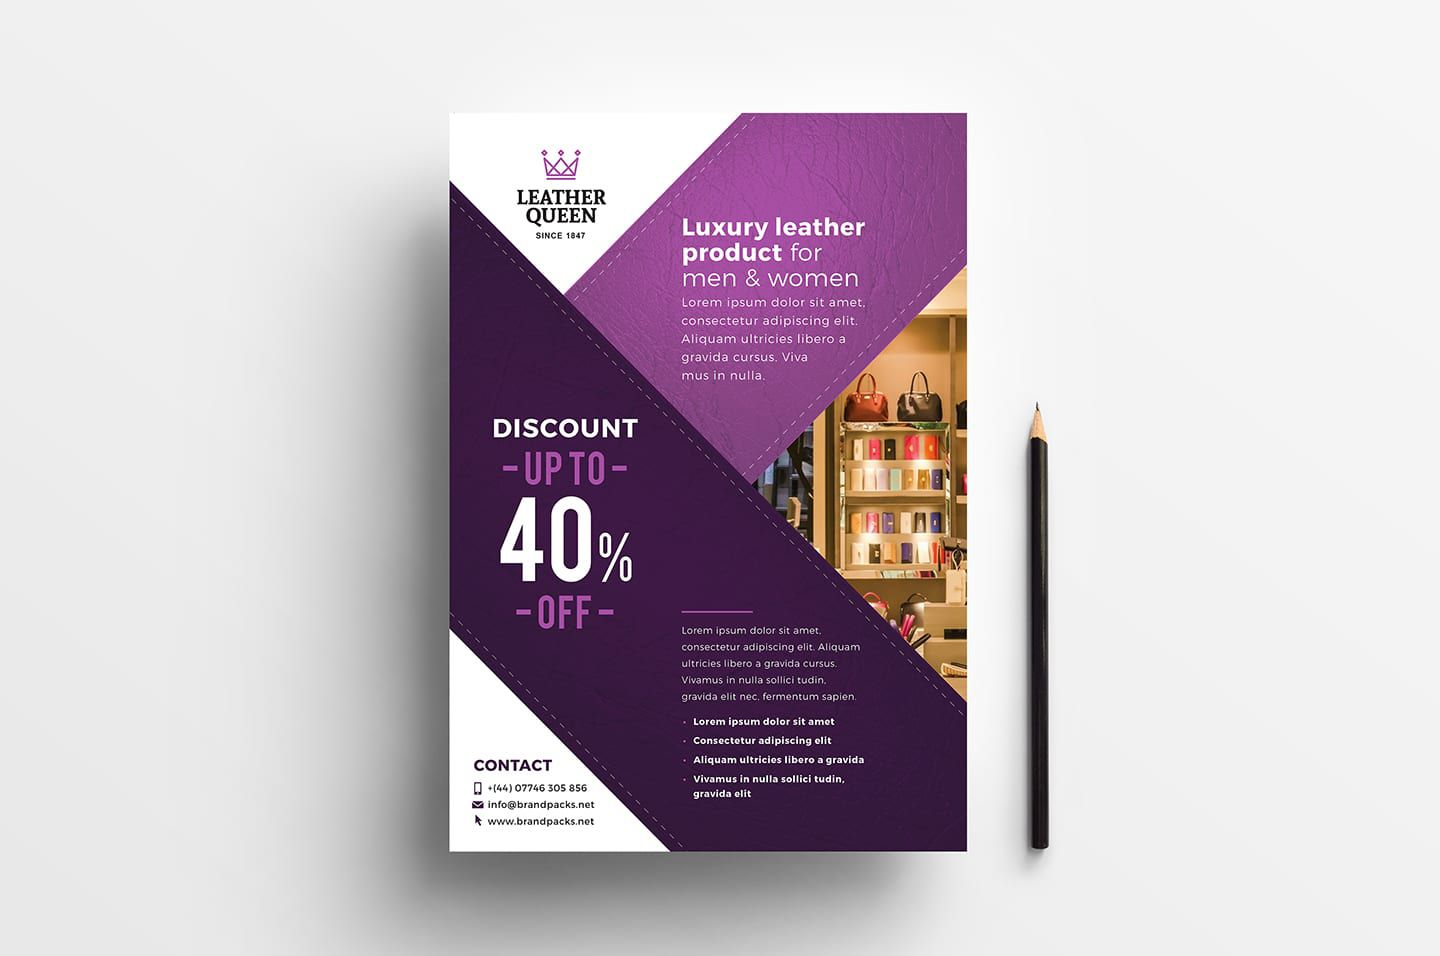 005 Singular Adobe Photoshop Psd Poster Template Free Download Highest Quality Full